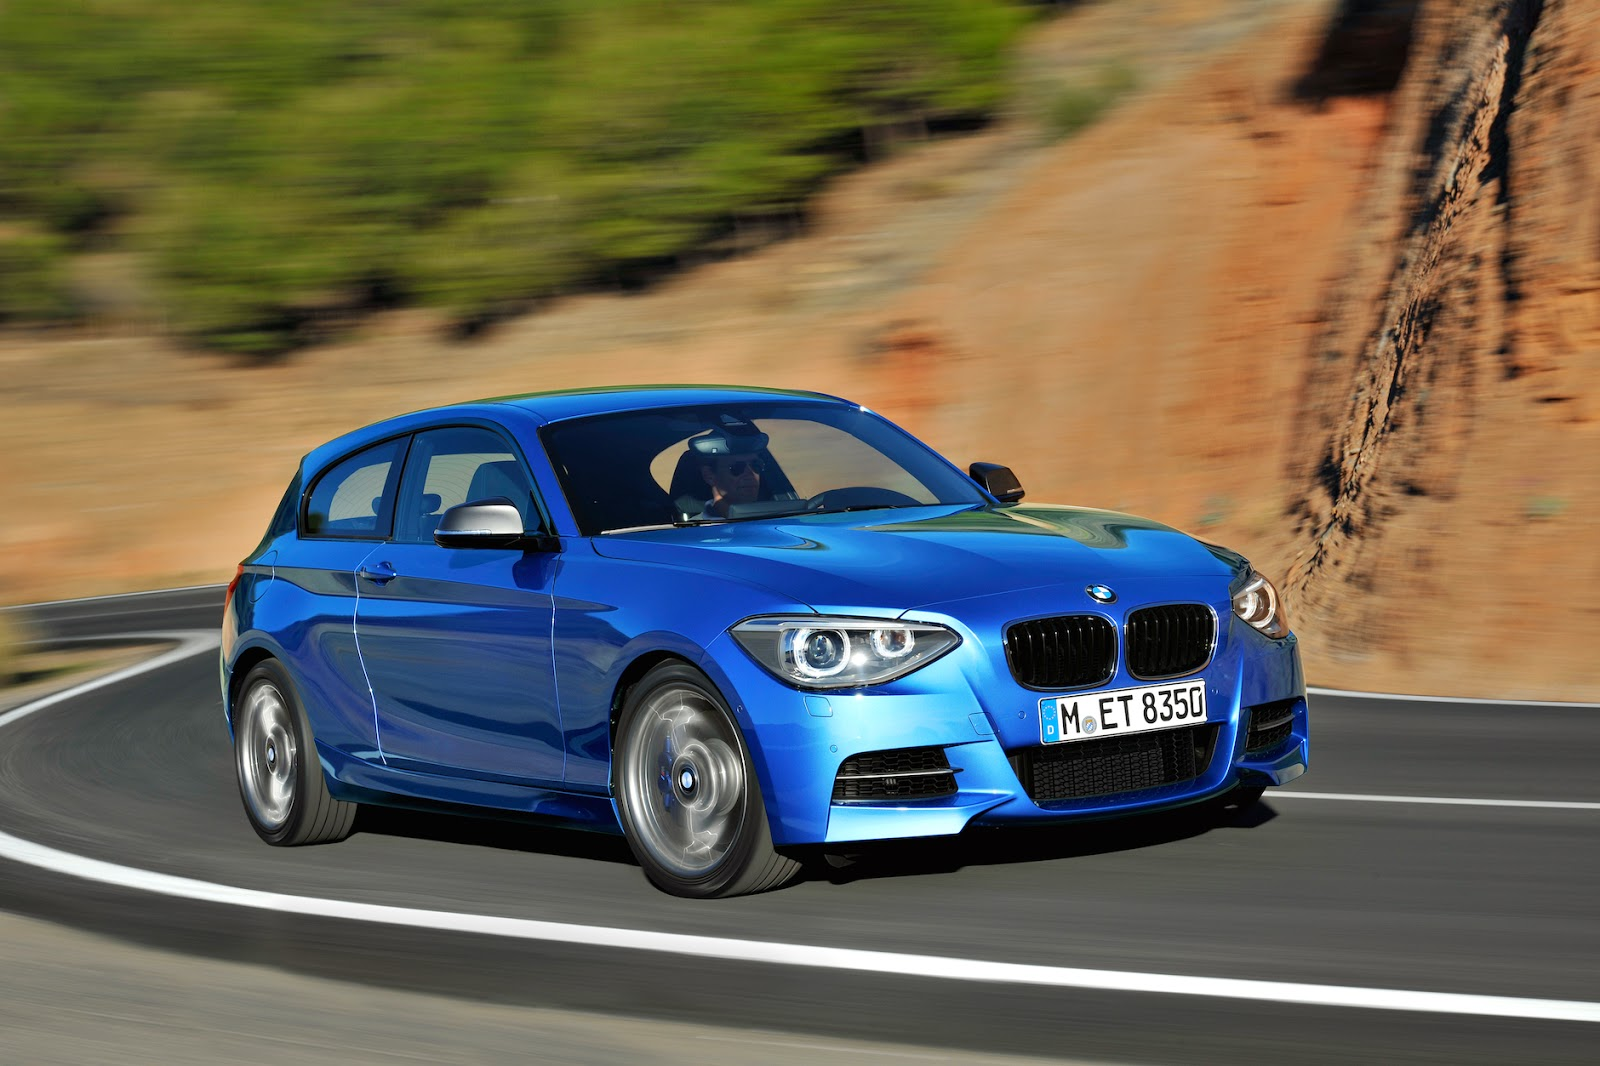 BMW M135i - 3 door hatchback